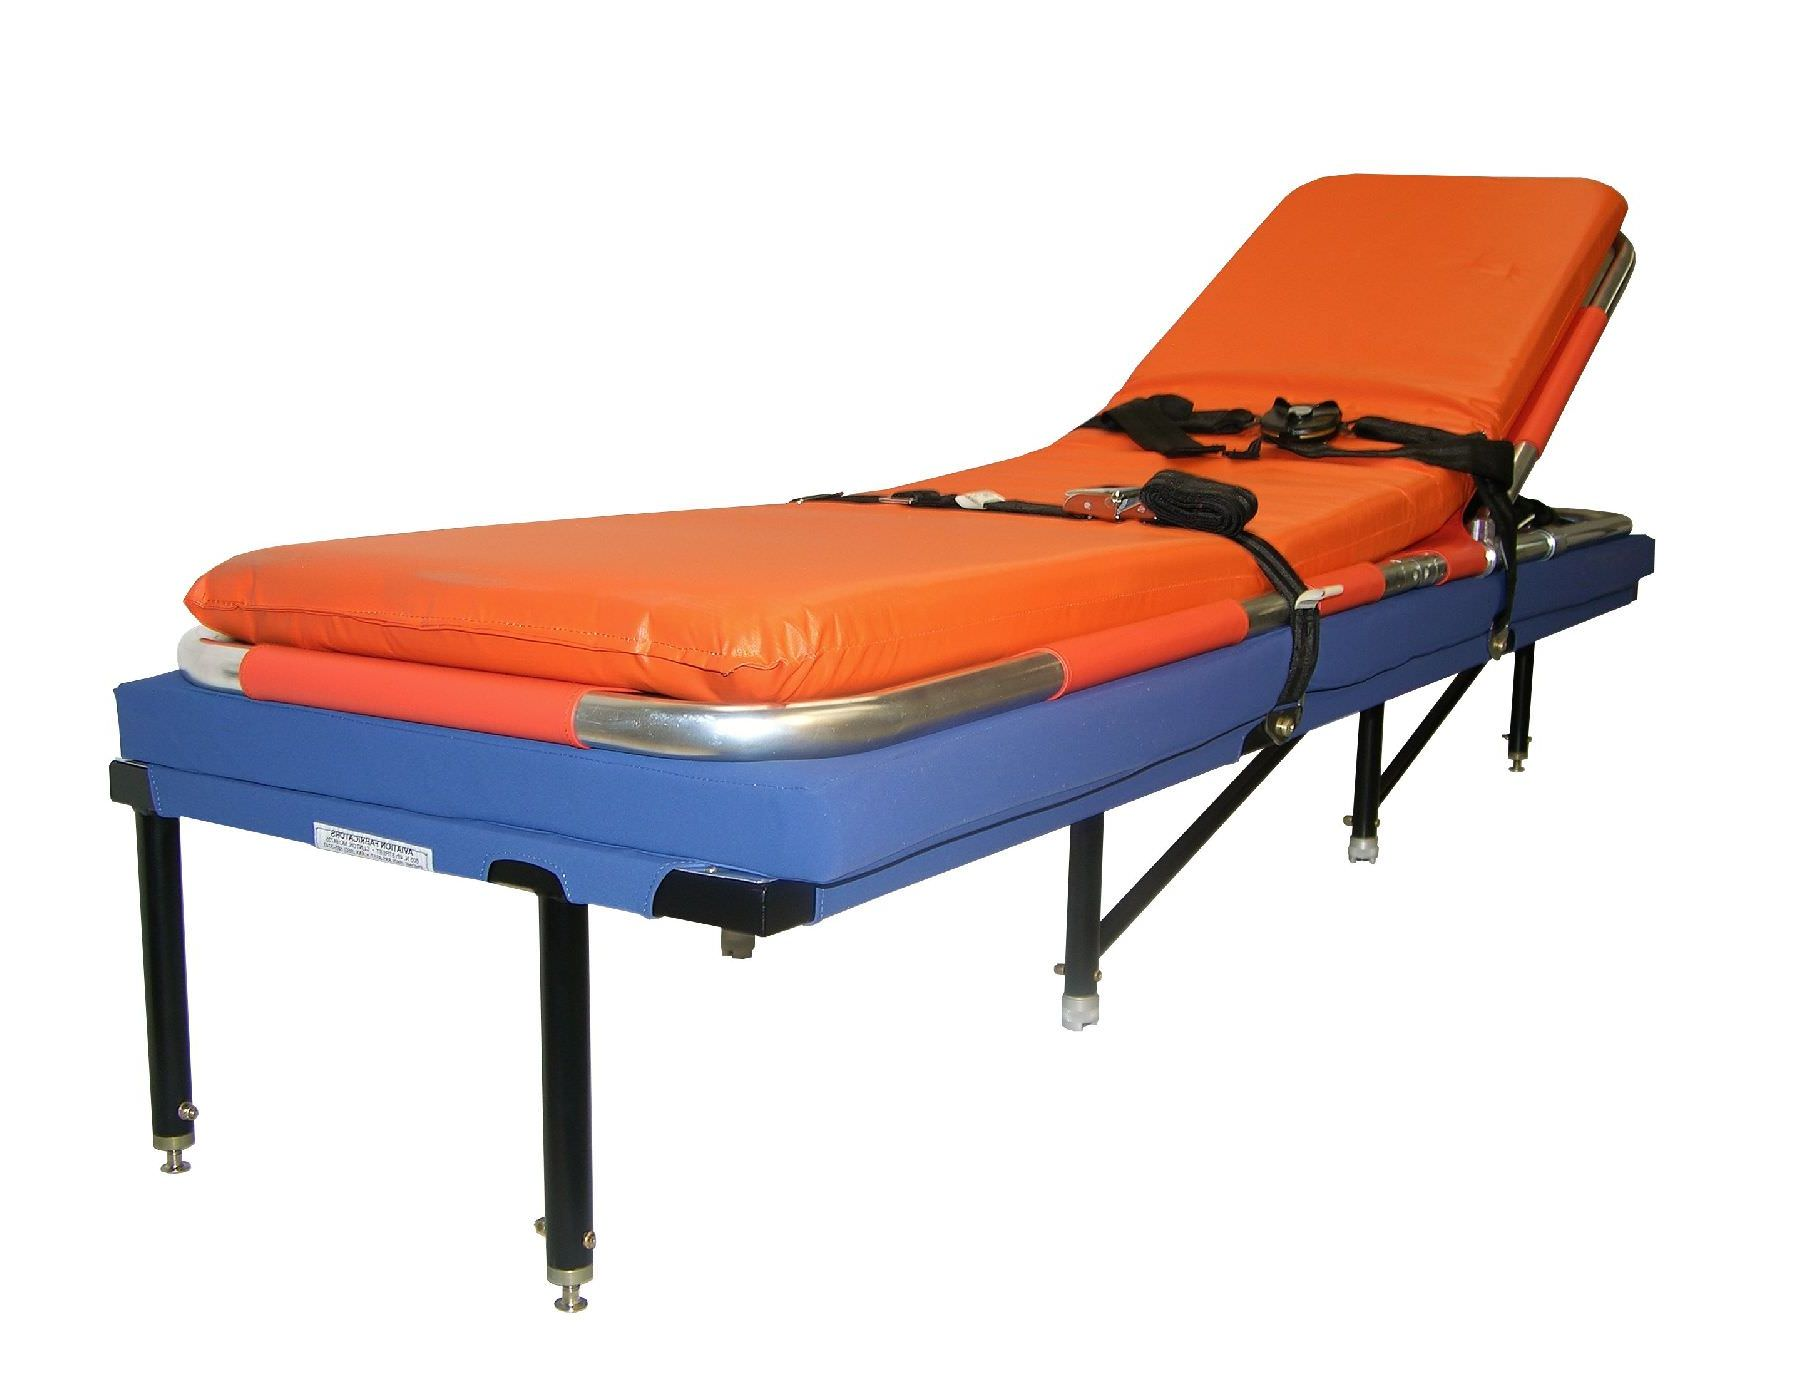 AvFab's STC & EASA approved Pilatus PC12 Medical Stretcher Kit provides an operator with the option of transporting an ill or injured, non-critical patient. These stretchers are ideal as an economical alternative to complete Medevac systems for the o